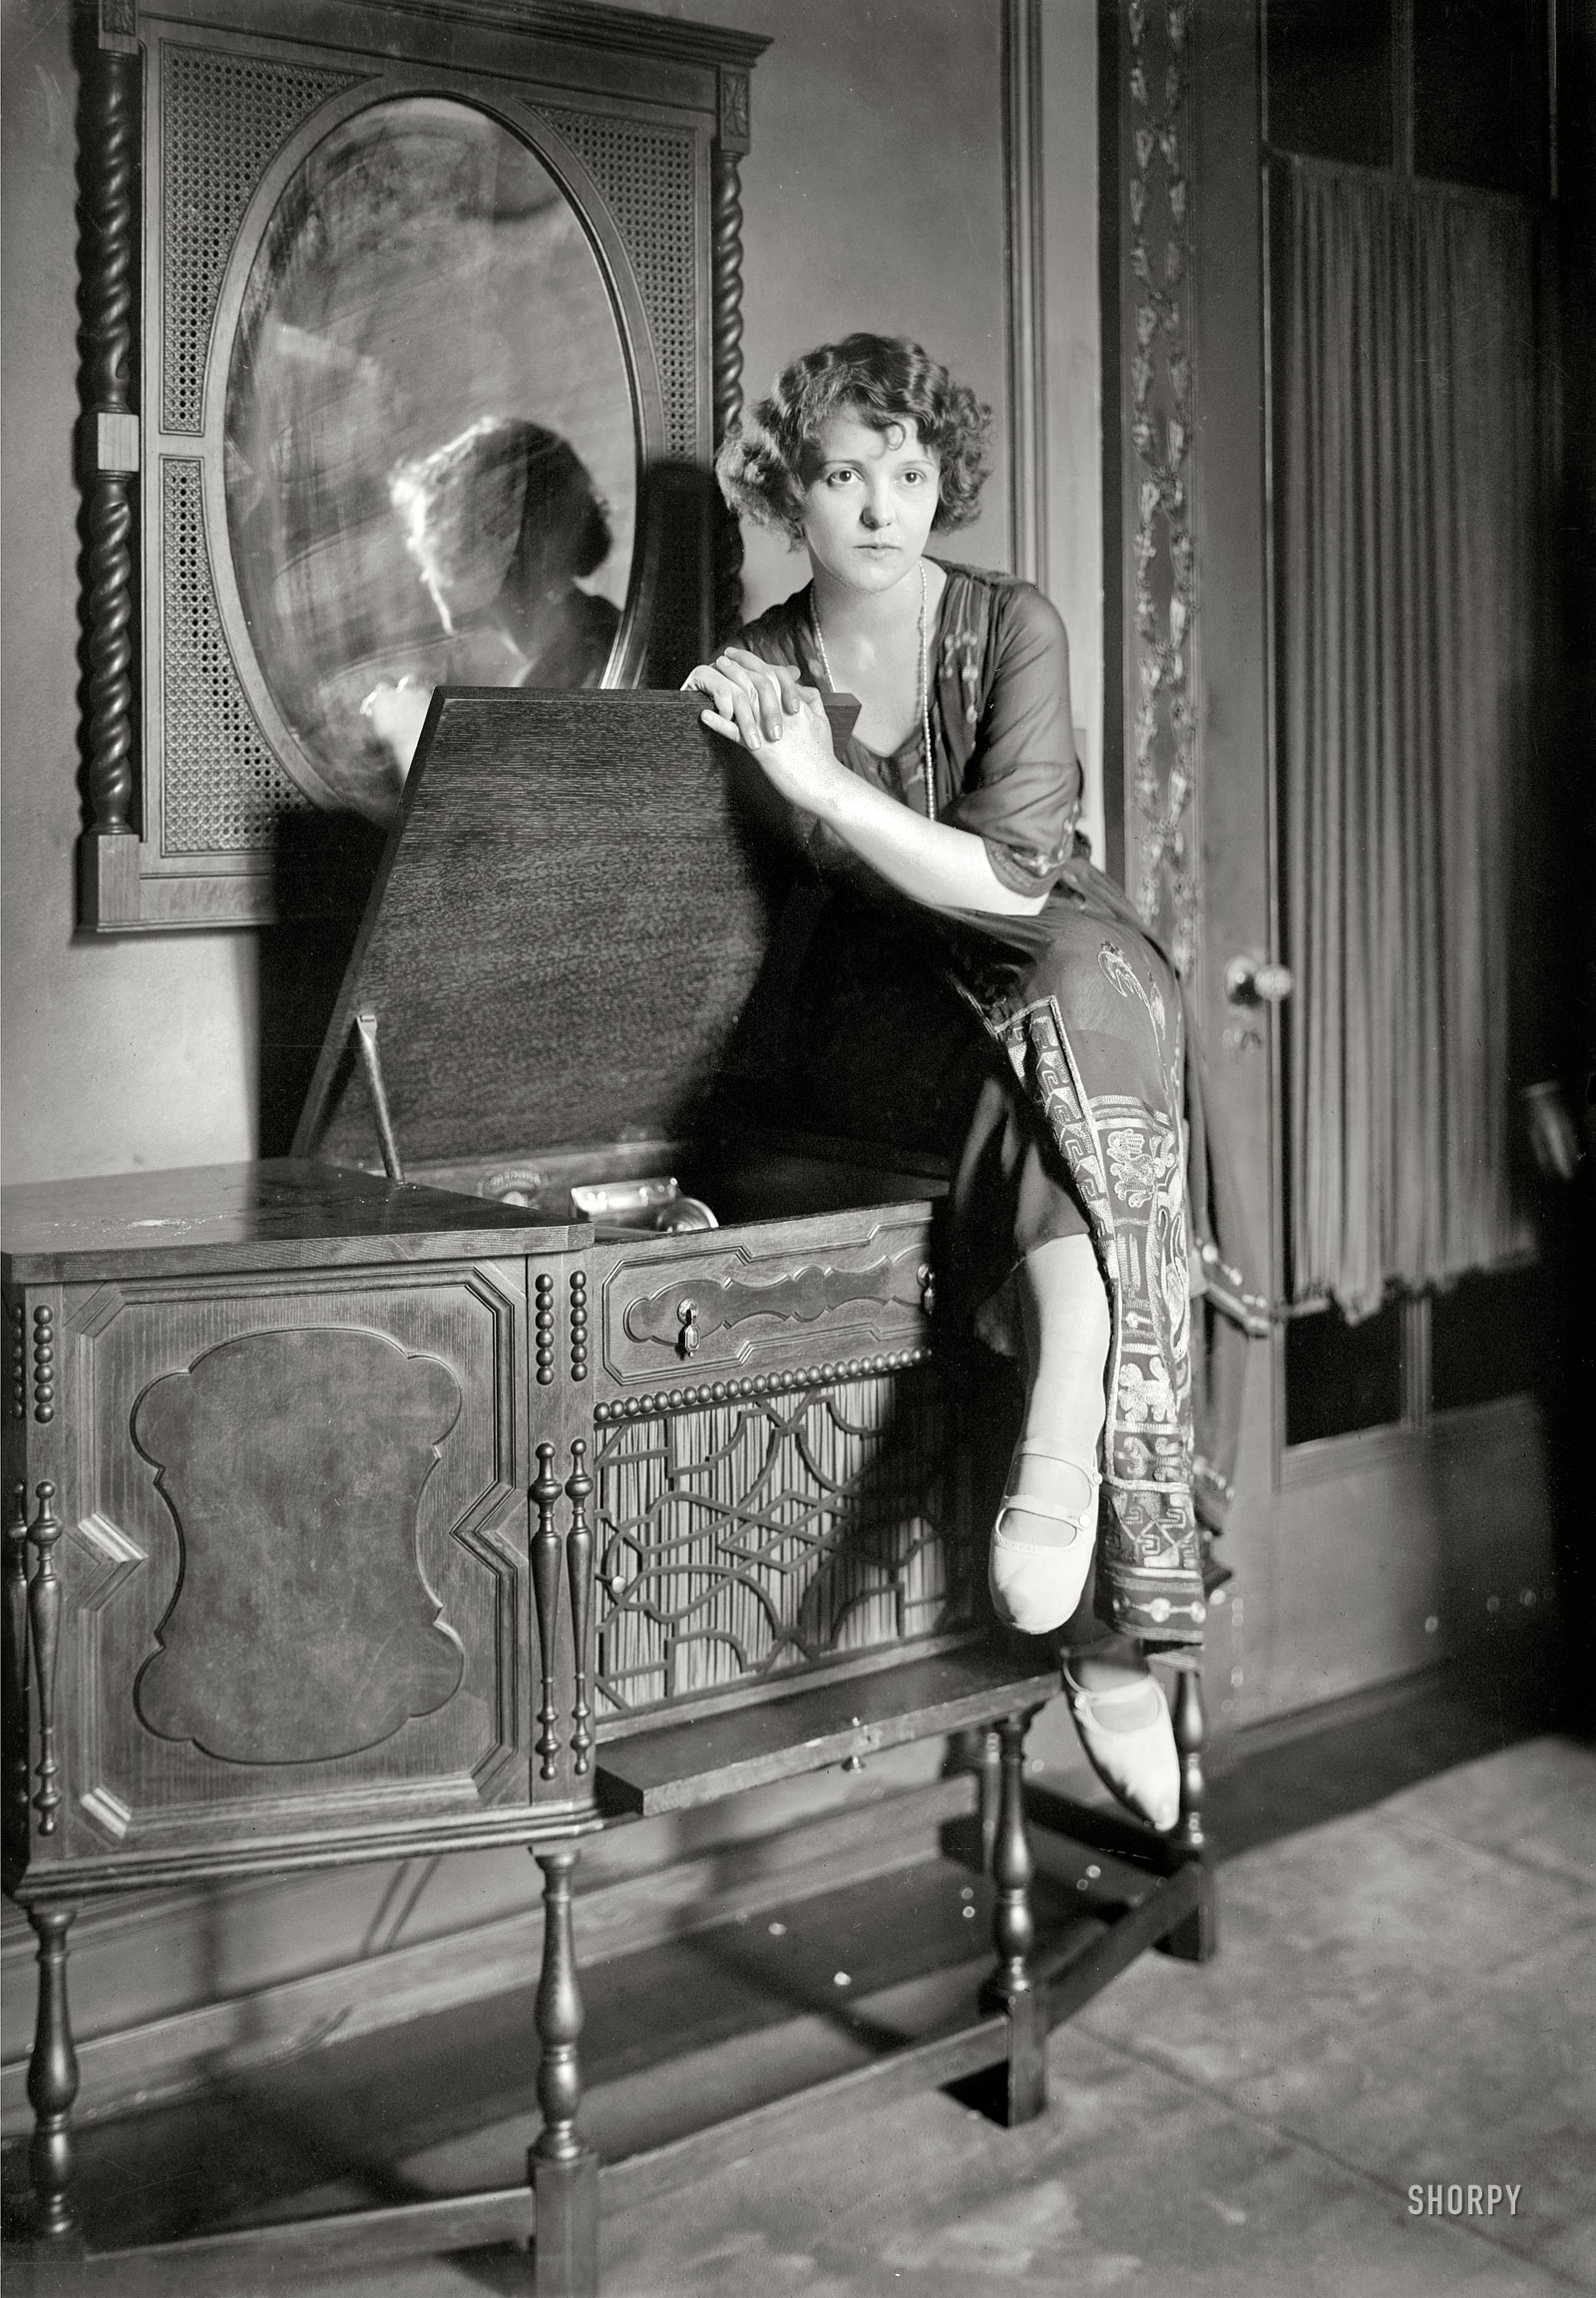 Phonograph Old Fashioned Way